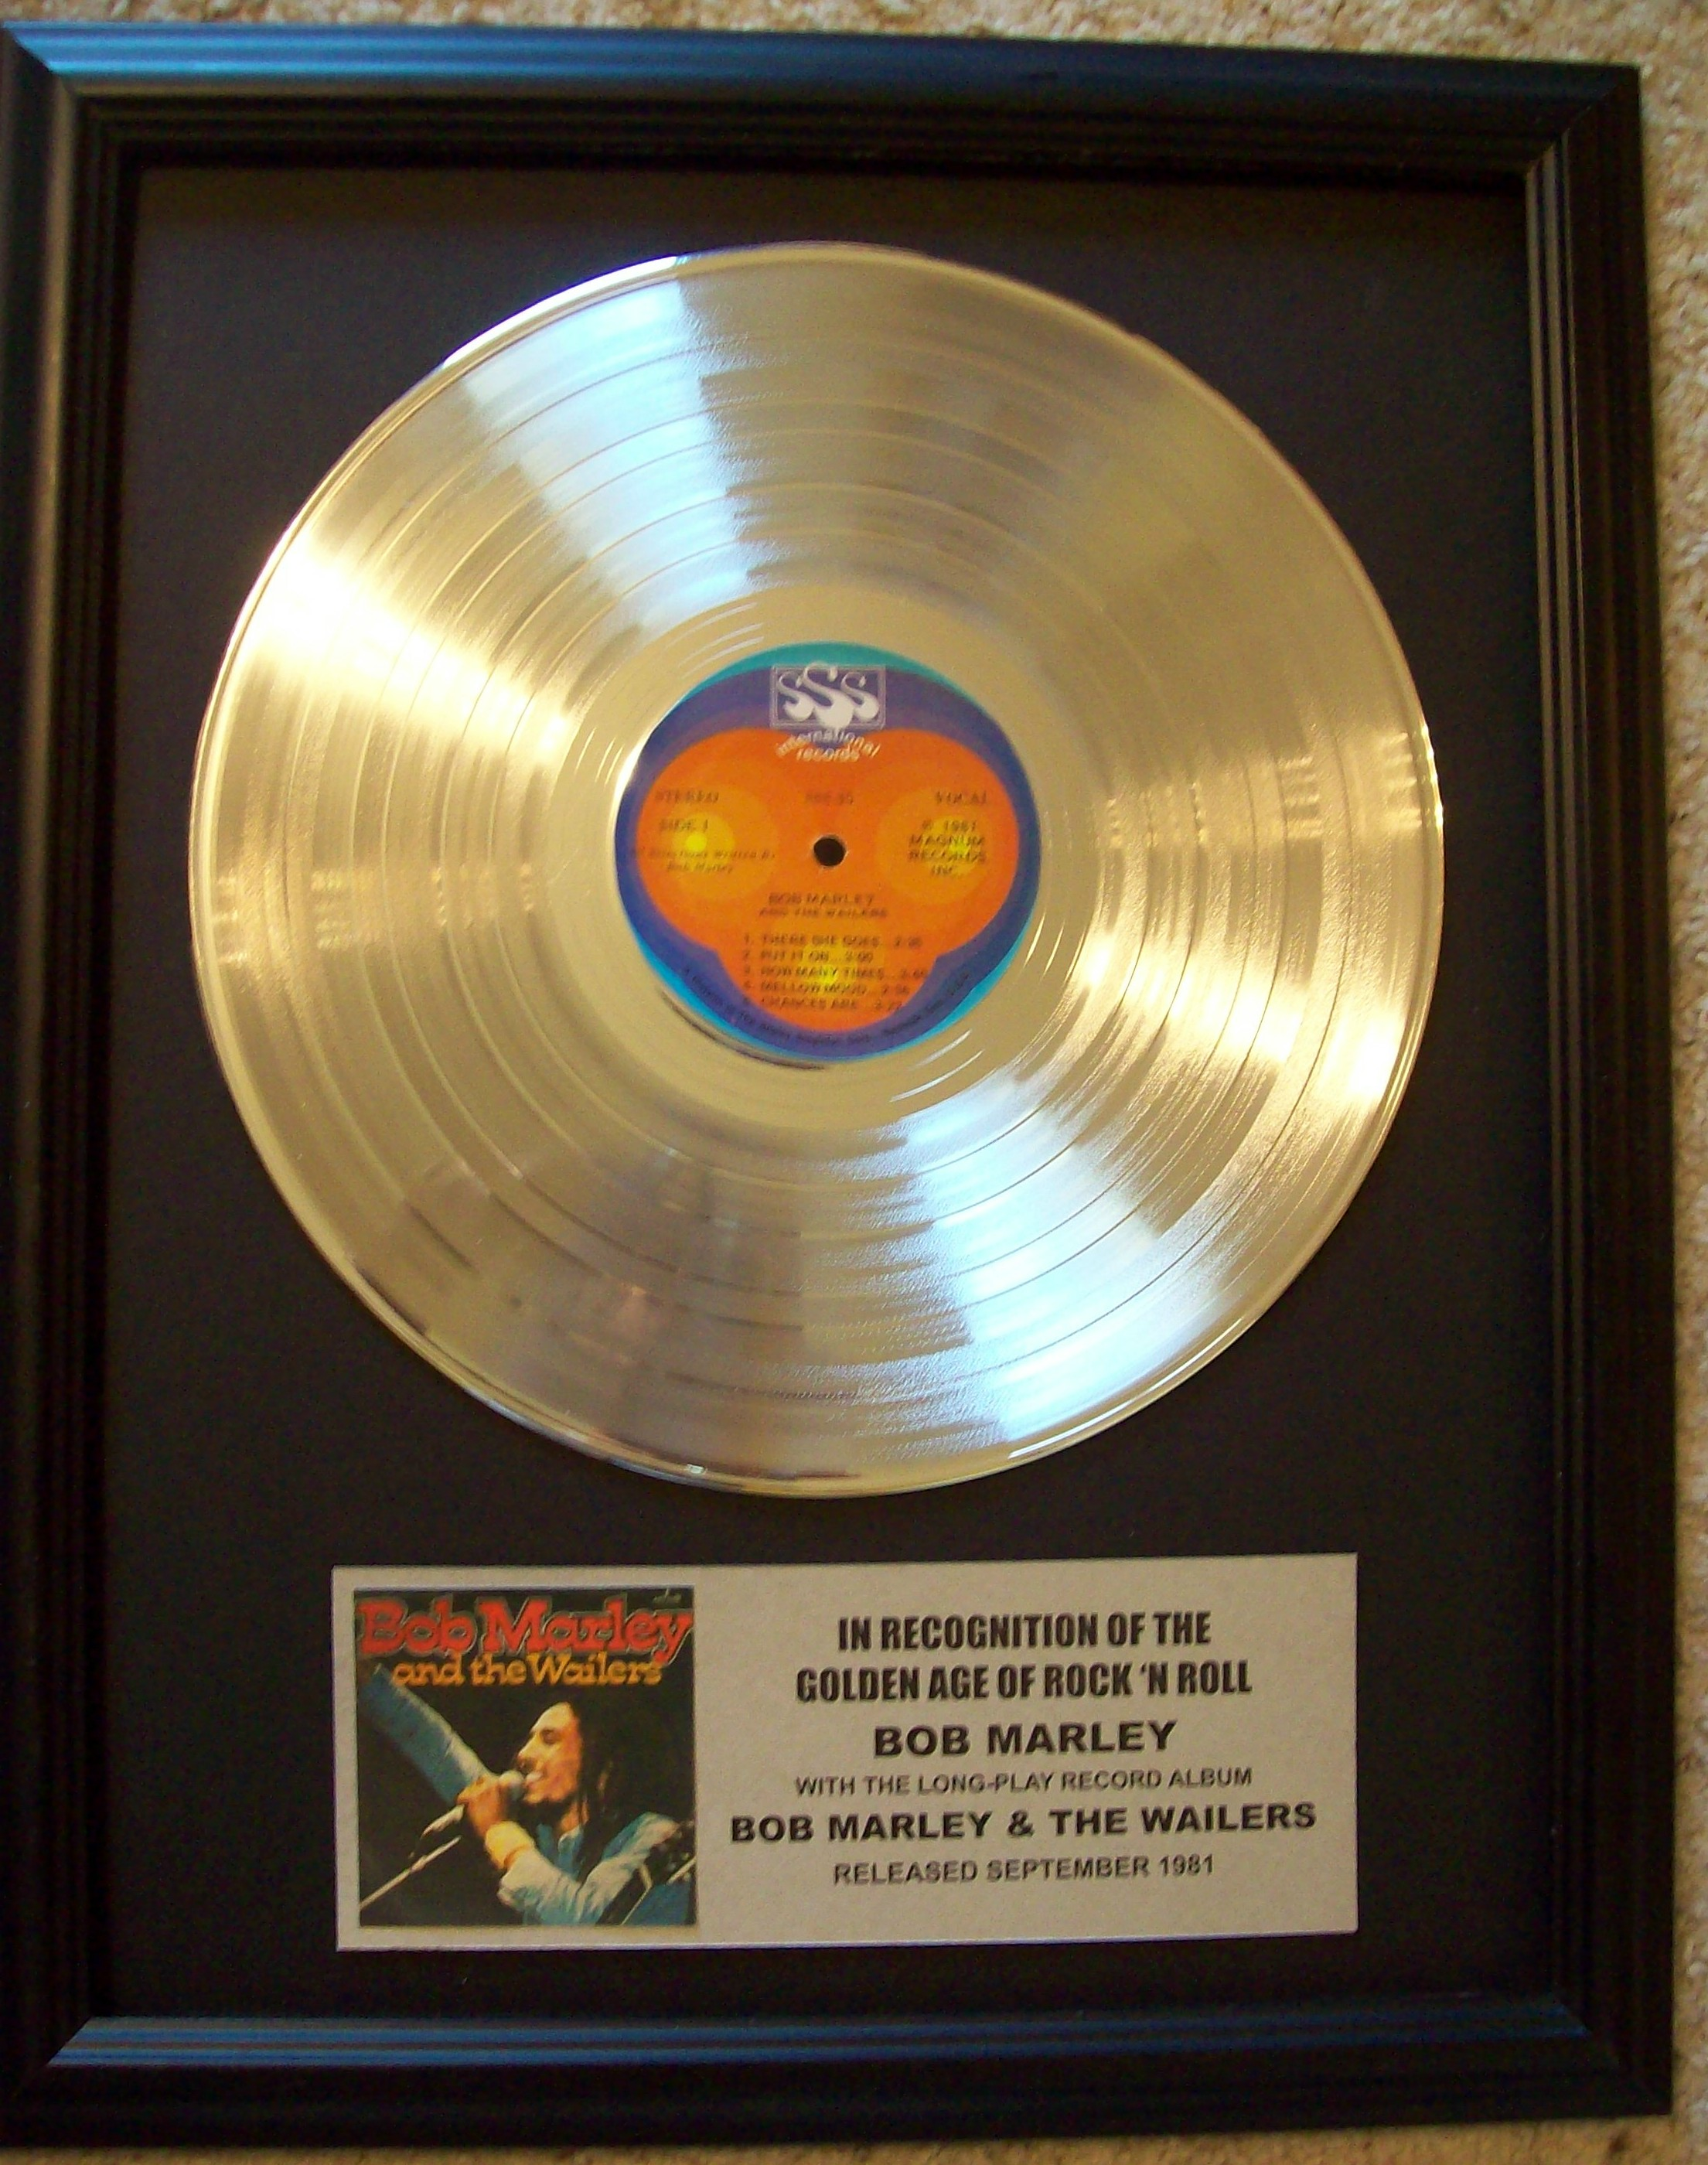 Image for Bob Marley and the Wailers Platinum Record